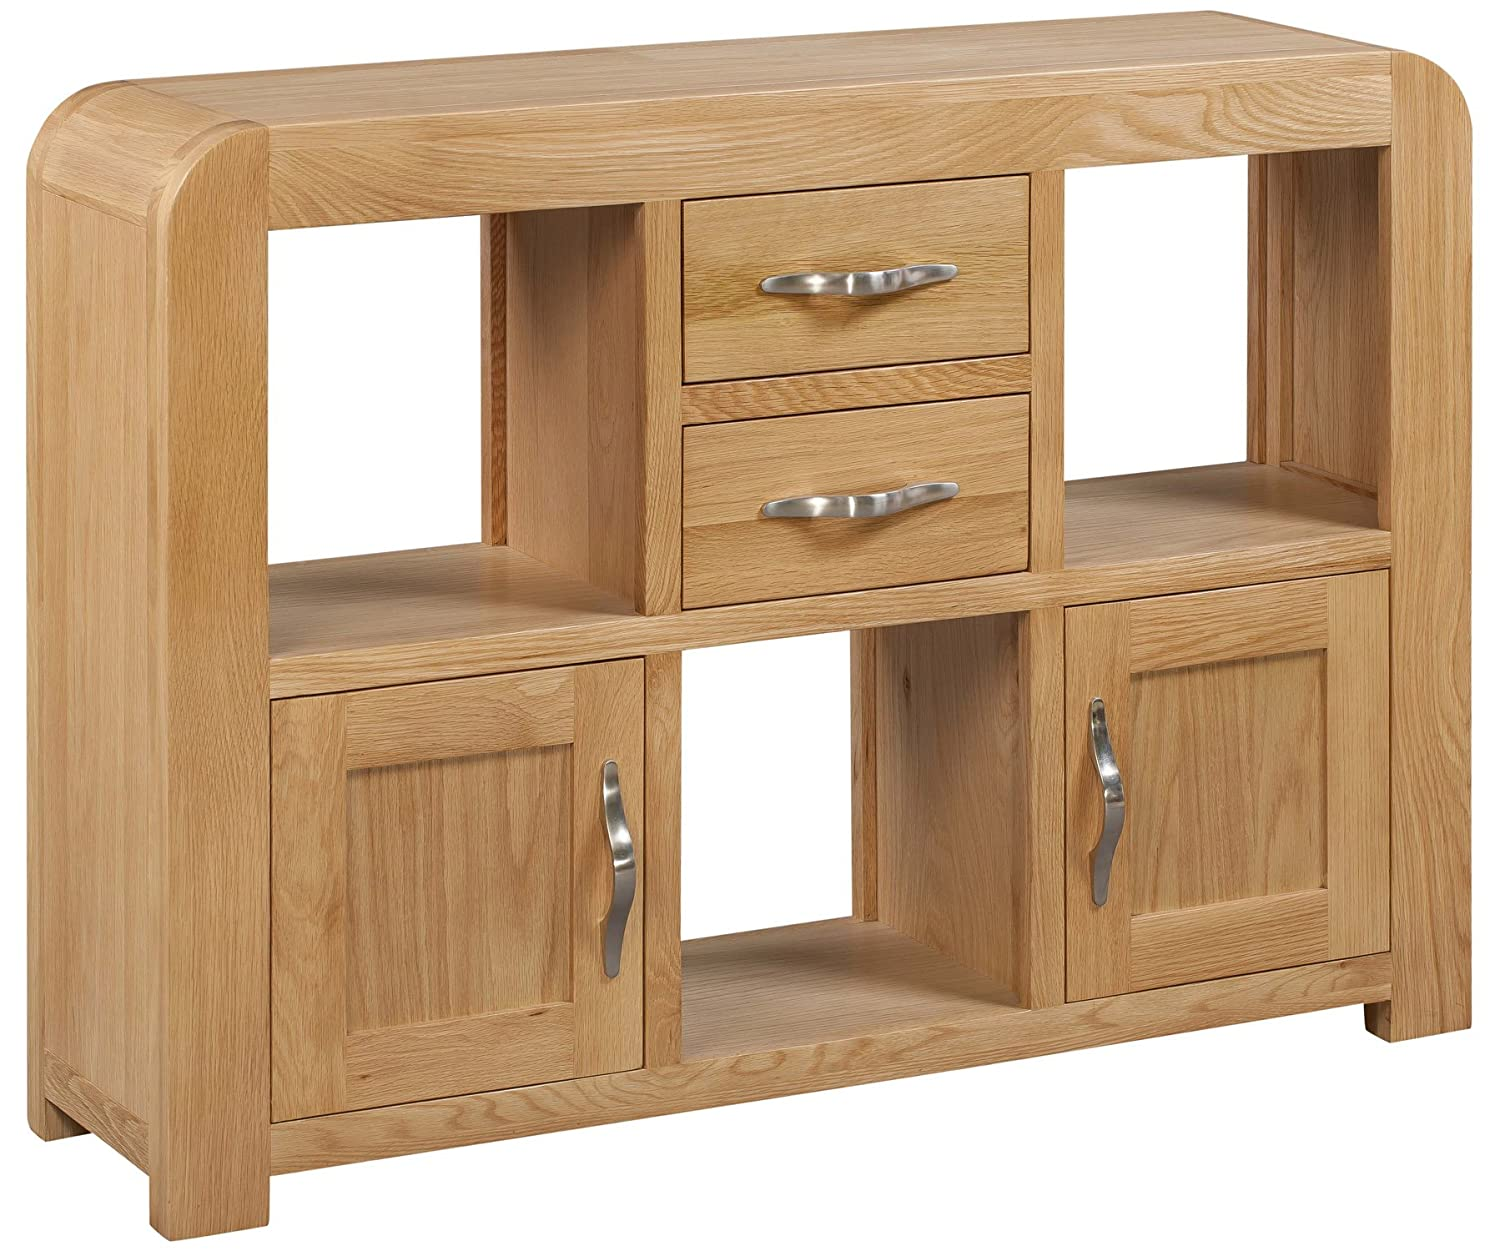 Venice Oak Small Display Cabinet includes Two Drawers with Lacquered Finish|2 Door 2 Drawer Cupboard with Shelving|Solid Wood 2 Tier Unit Storage Unit Hallowood Furniture